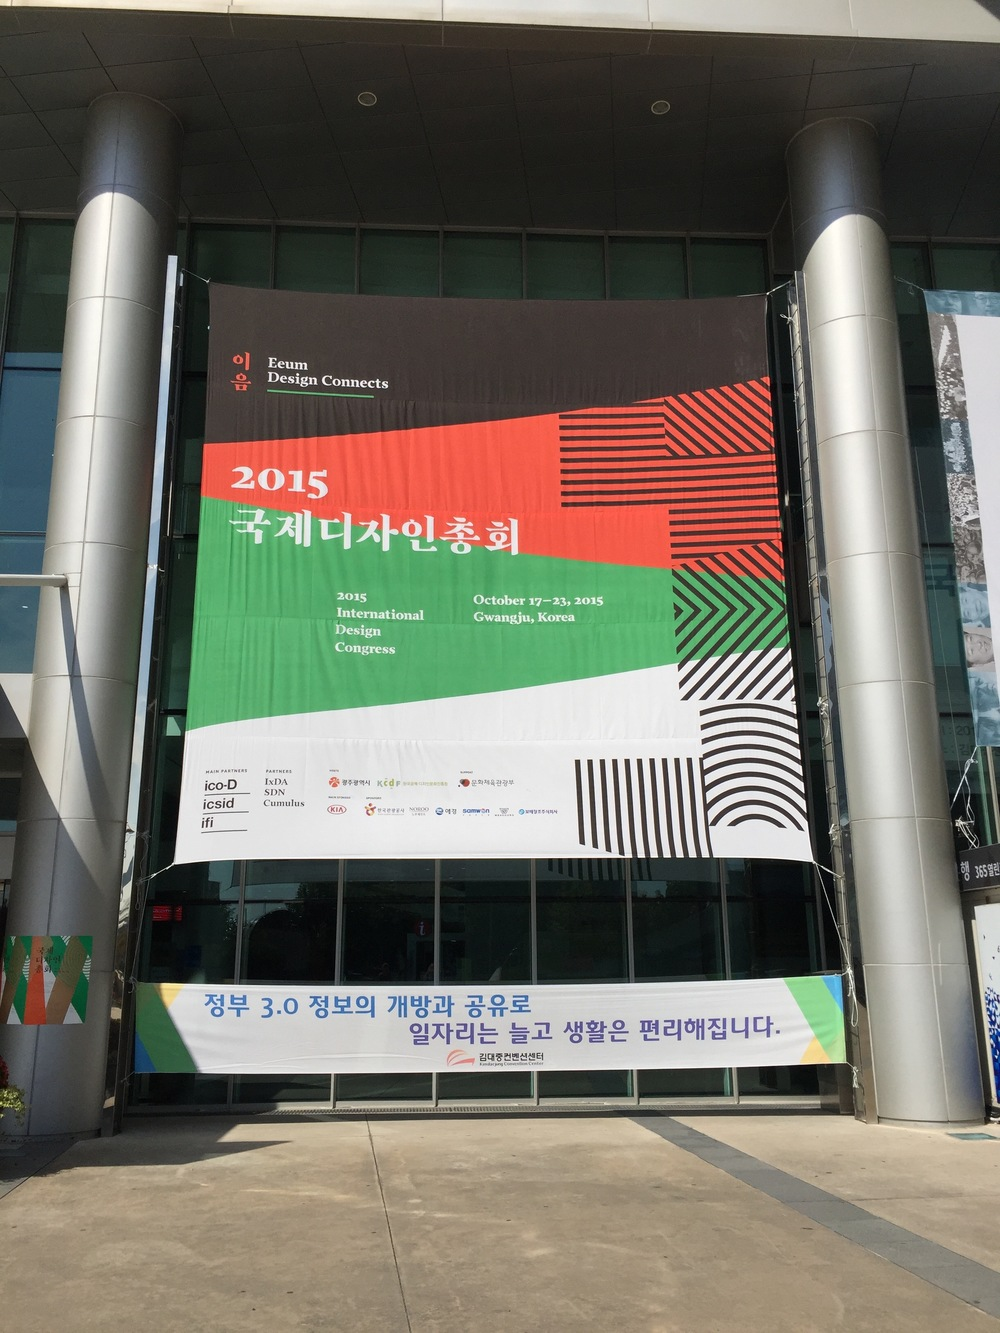 International Design Congress at the Kimdaejung Convention Center in Gwangju, South Korea.